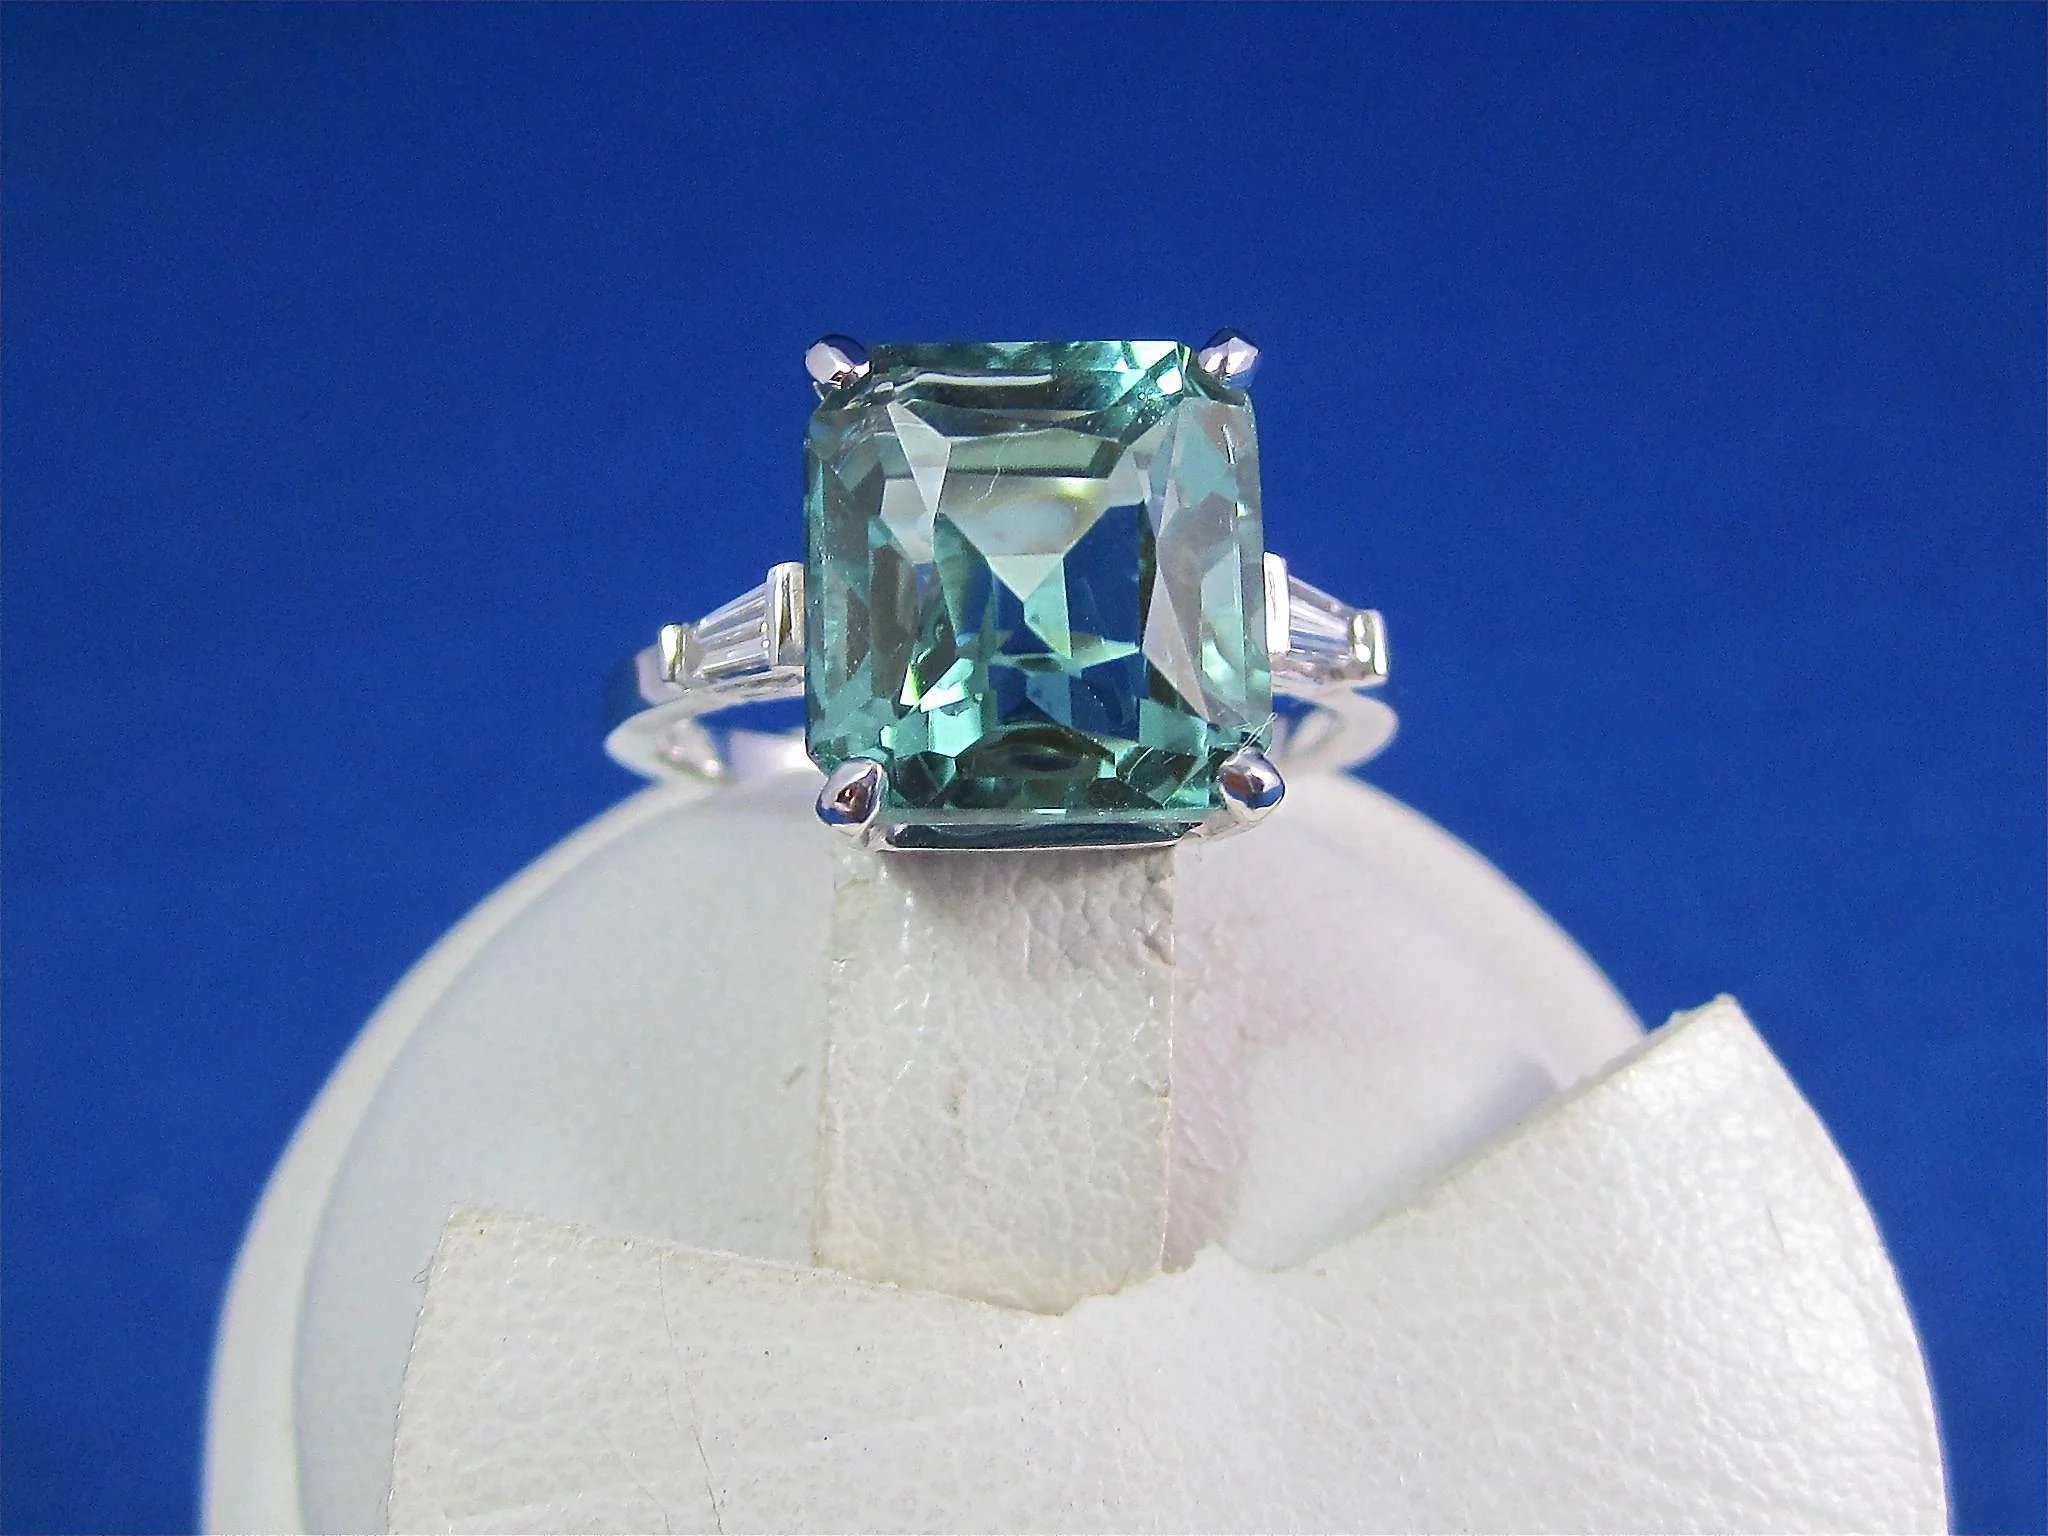 quartz ben bridge jeweler engagement diamond ring jewelry rings green